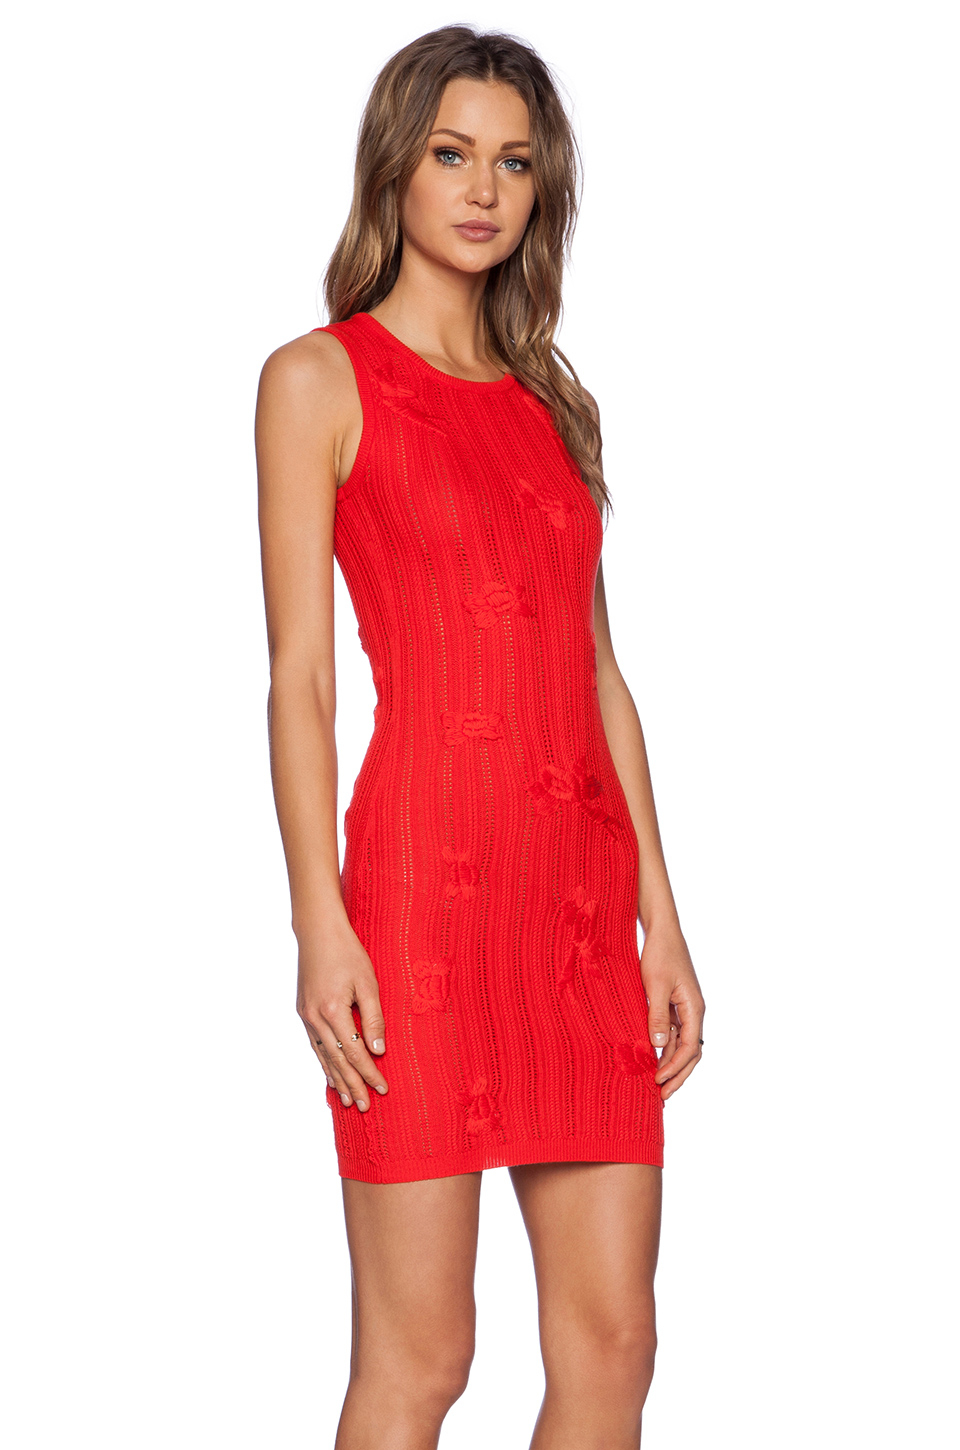 Not Clothing But Makeup Is Just As Important To Finish A: For Love & Lemons Forget Me Not Dress In Red